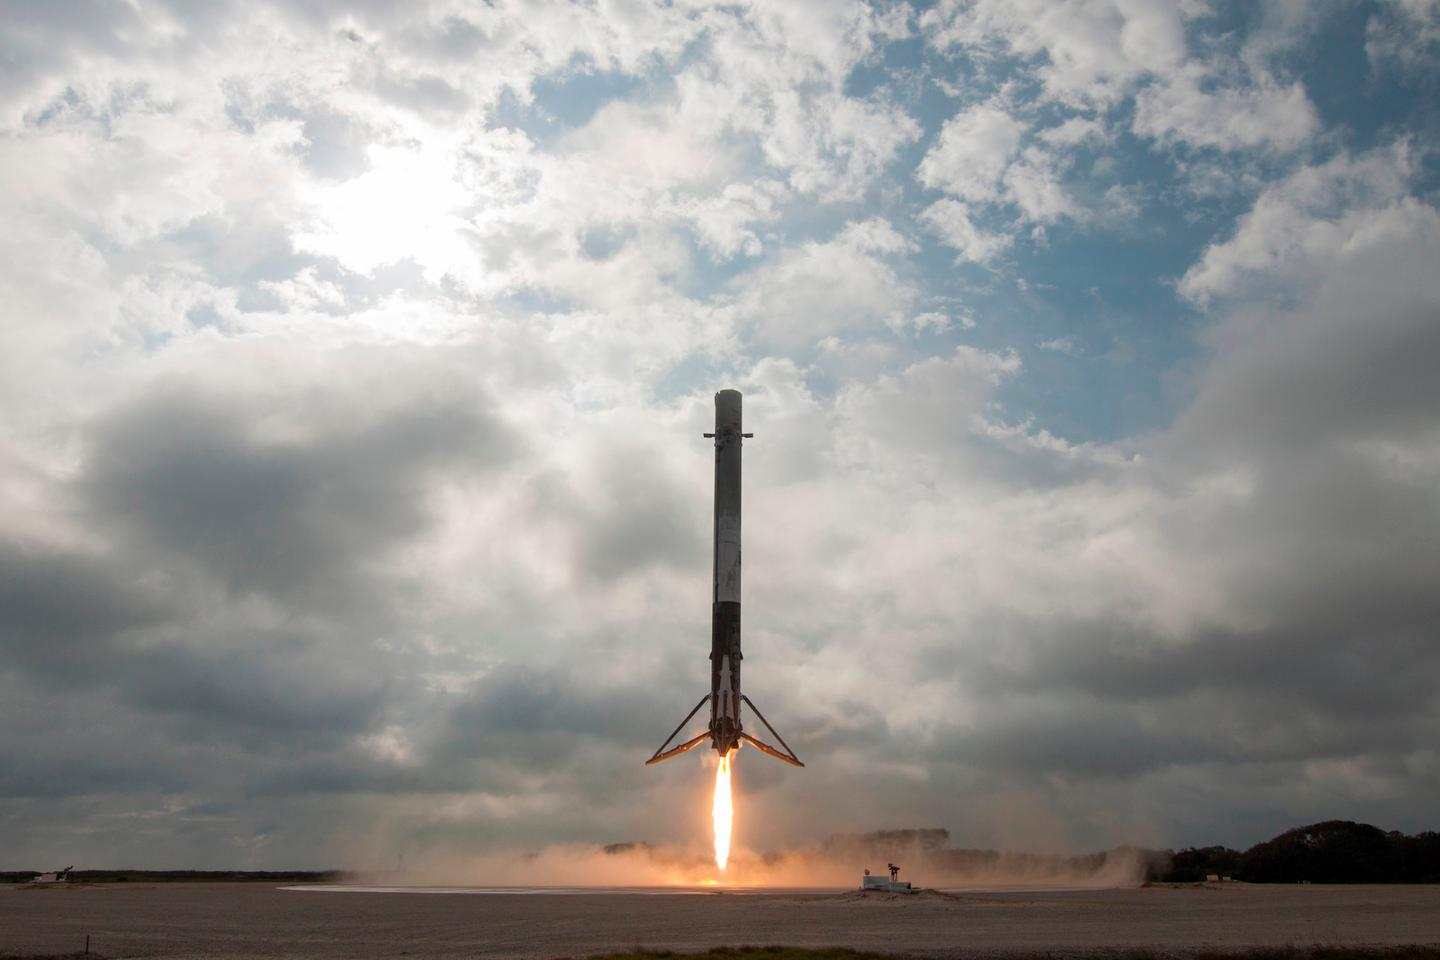 The Falcon 9 first stage touches down at Cape Canaveral